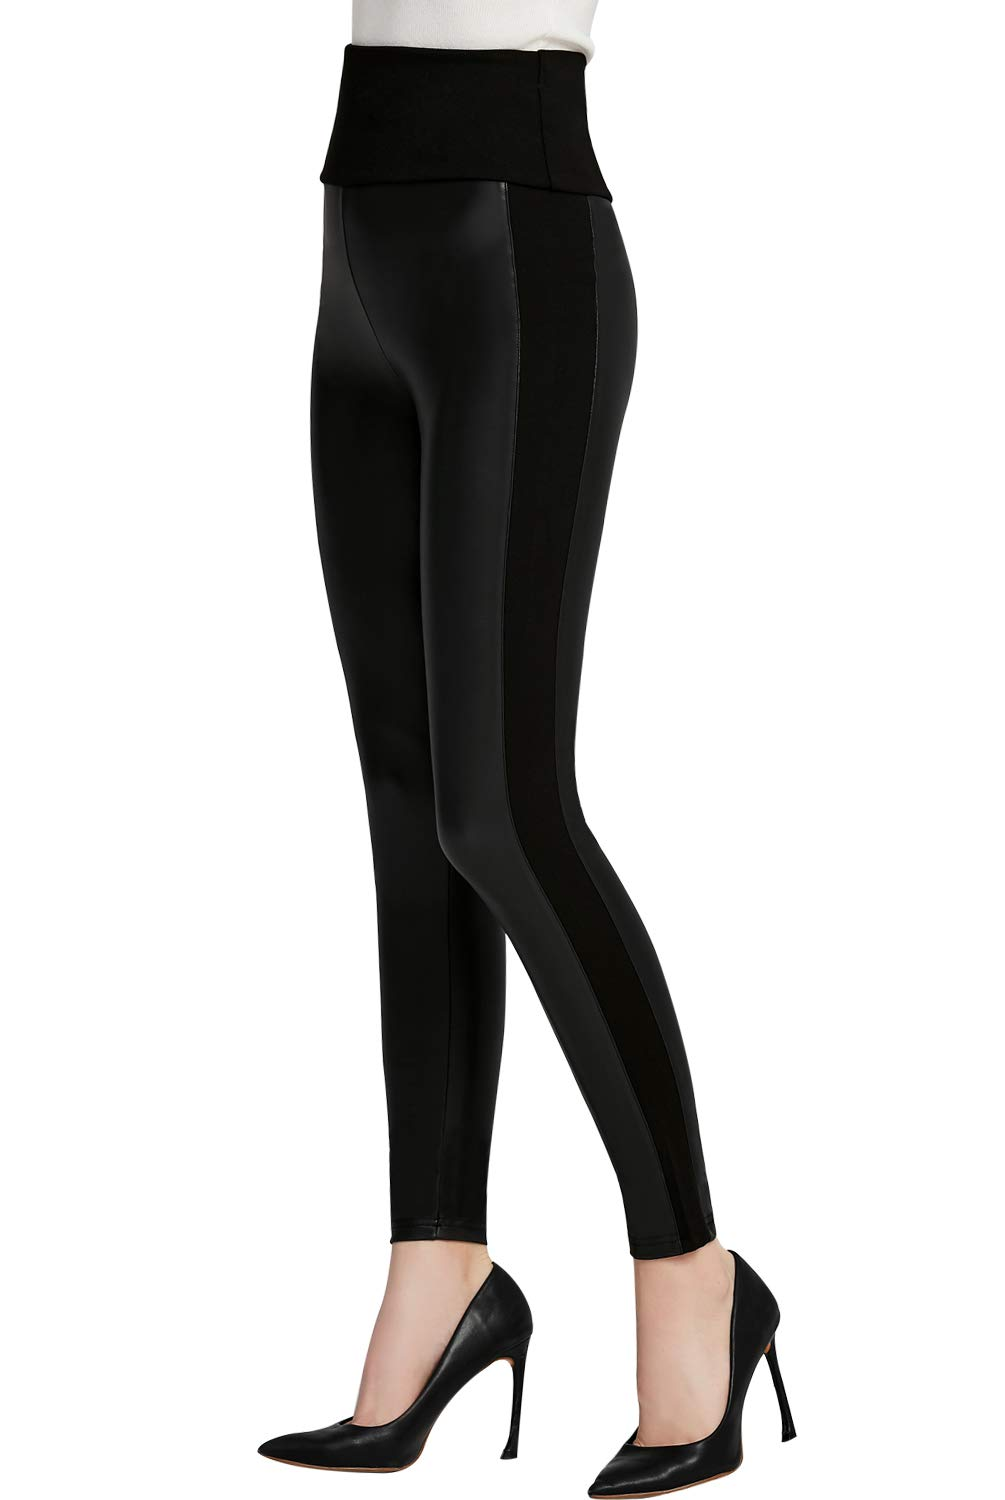 Everbellus Womens Black Faux Leather Leggings Girls High Waisted Sexy Leather Pants Medium